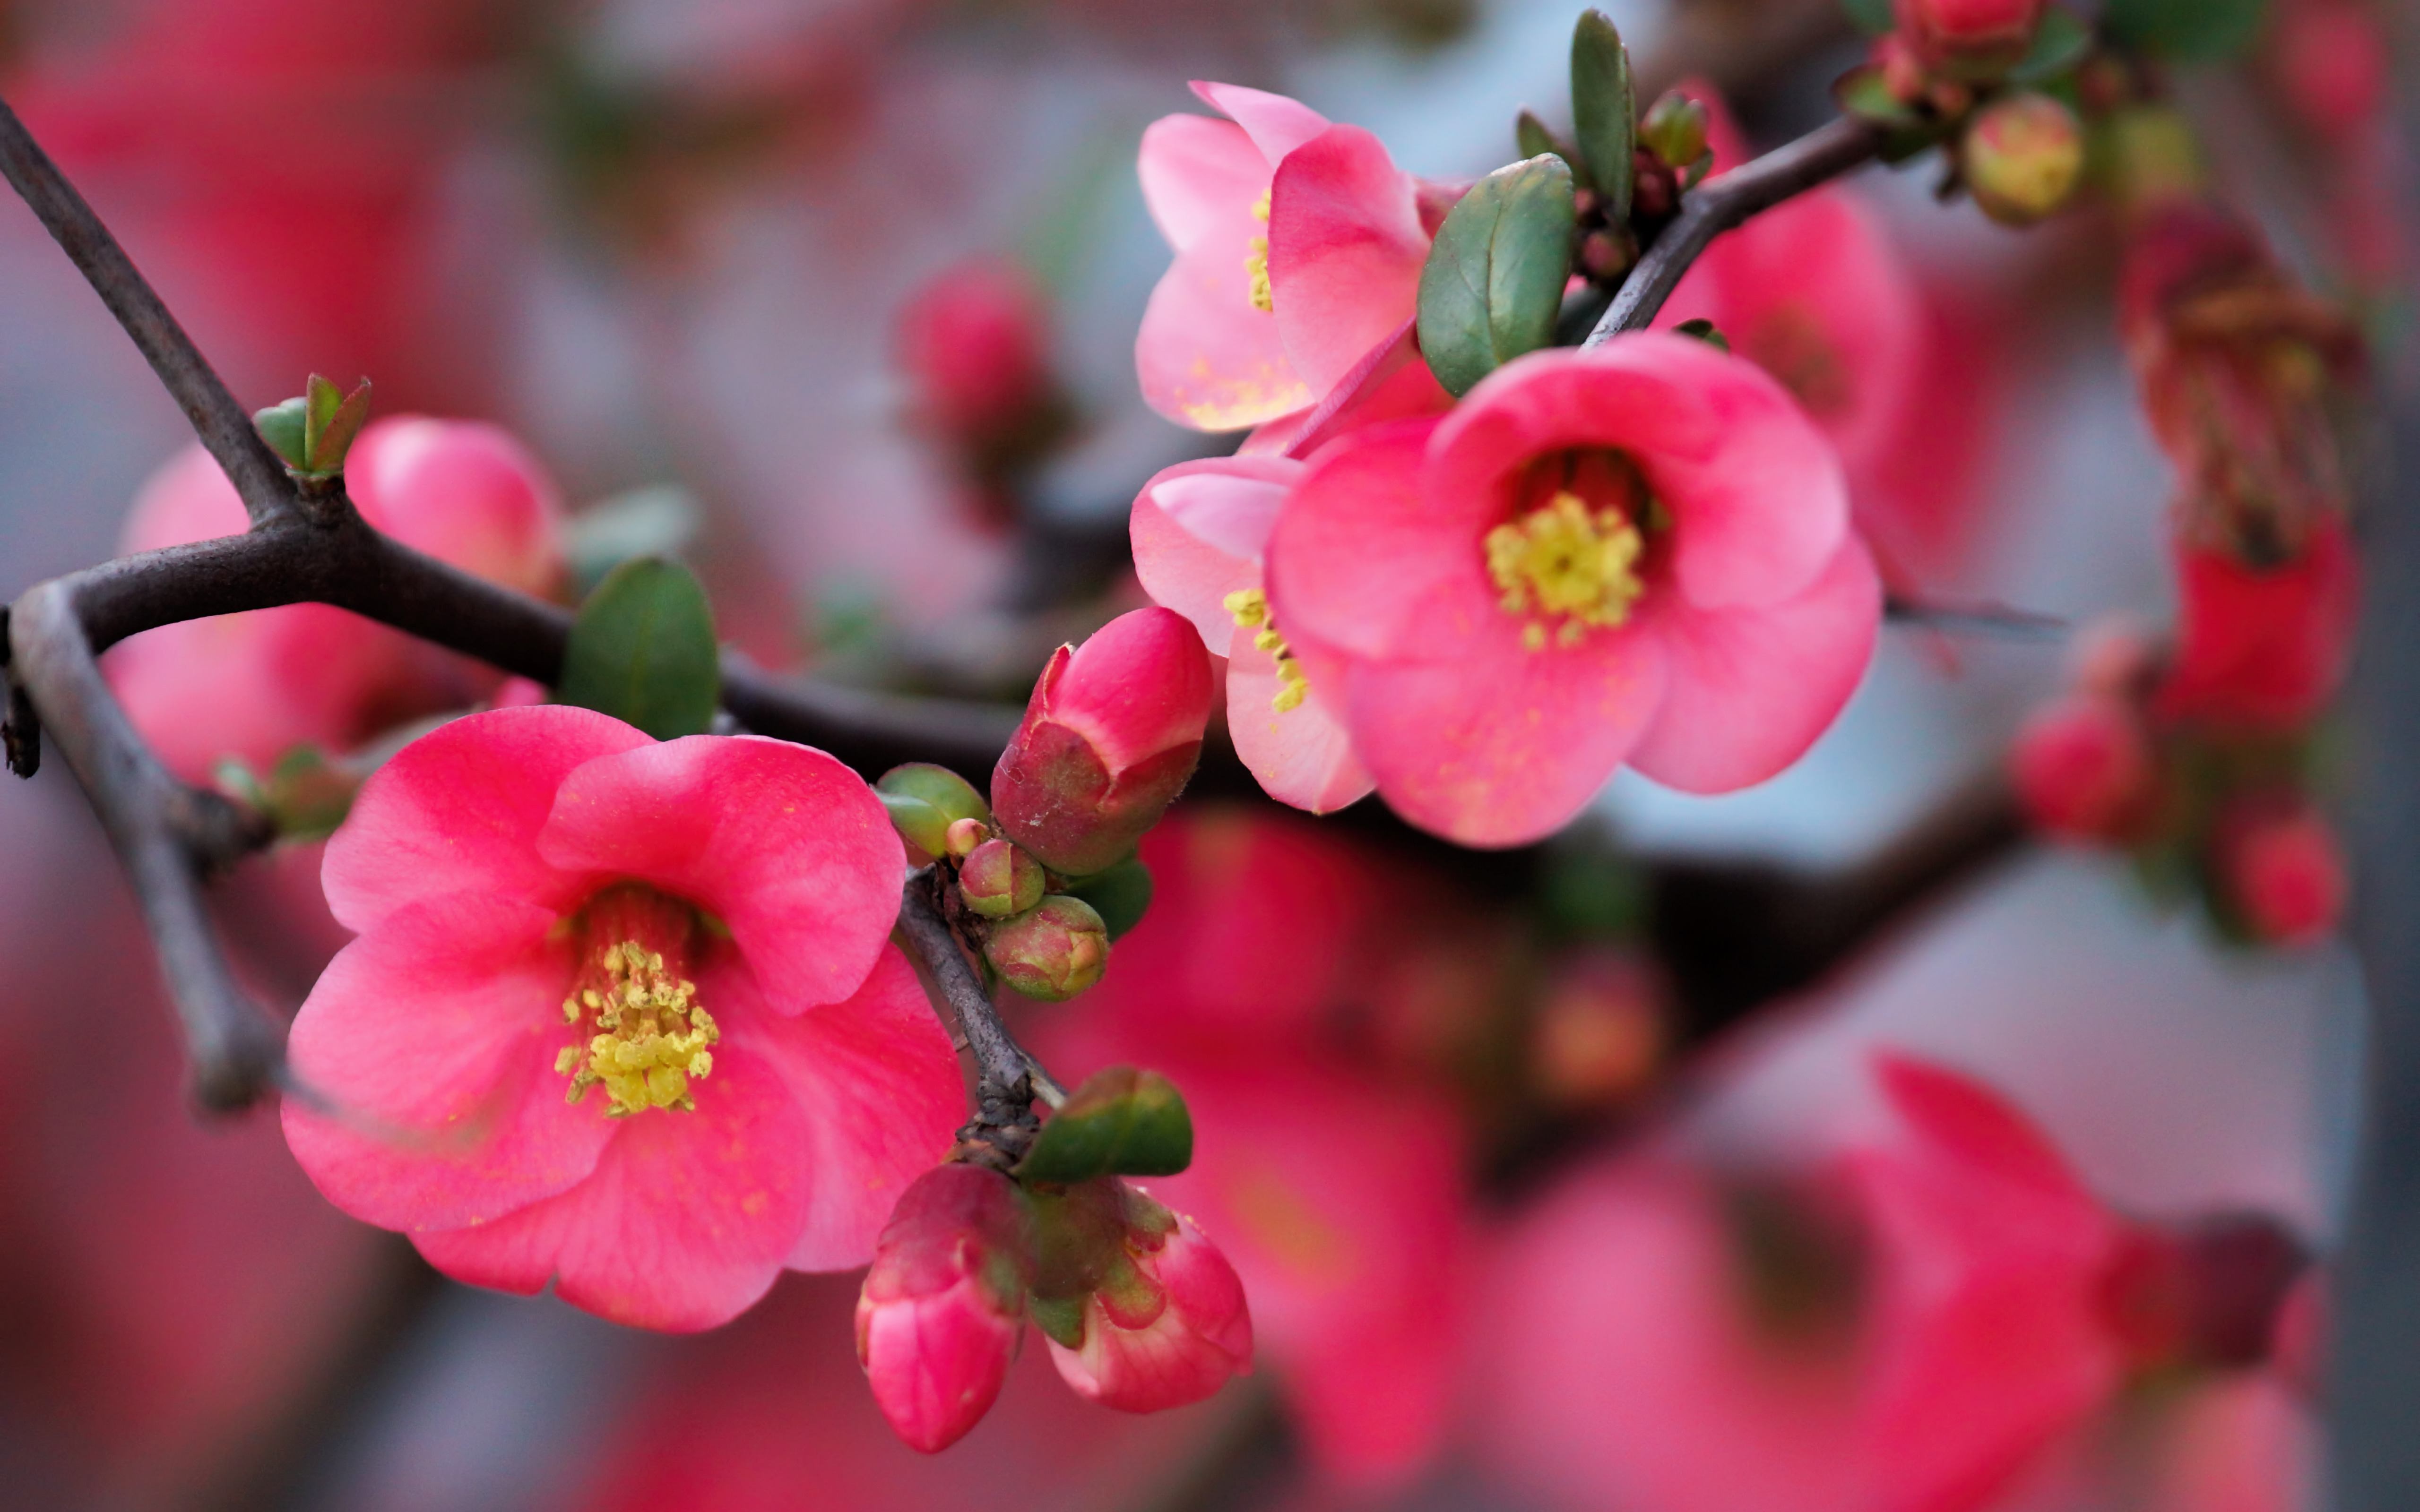 Pink Flowers and Buds, Tree Branch in Bloom widescreen wallpaper ...